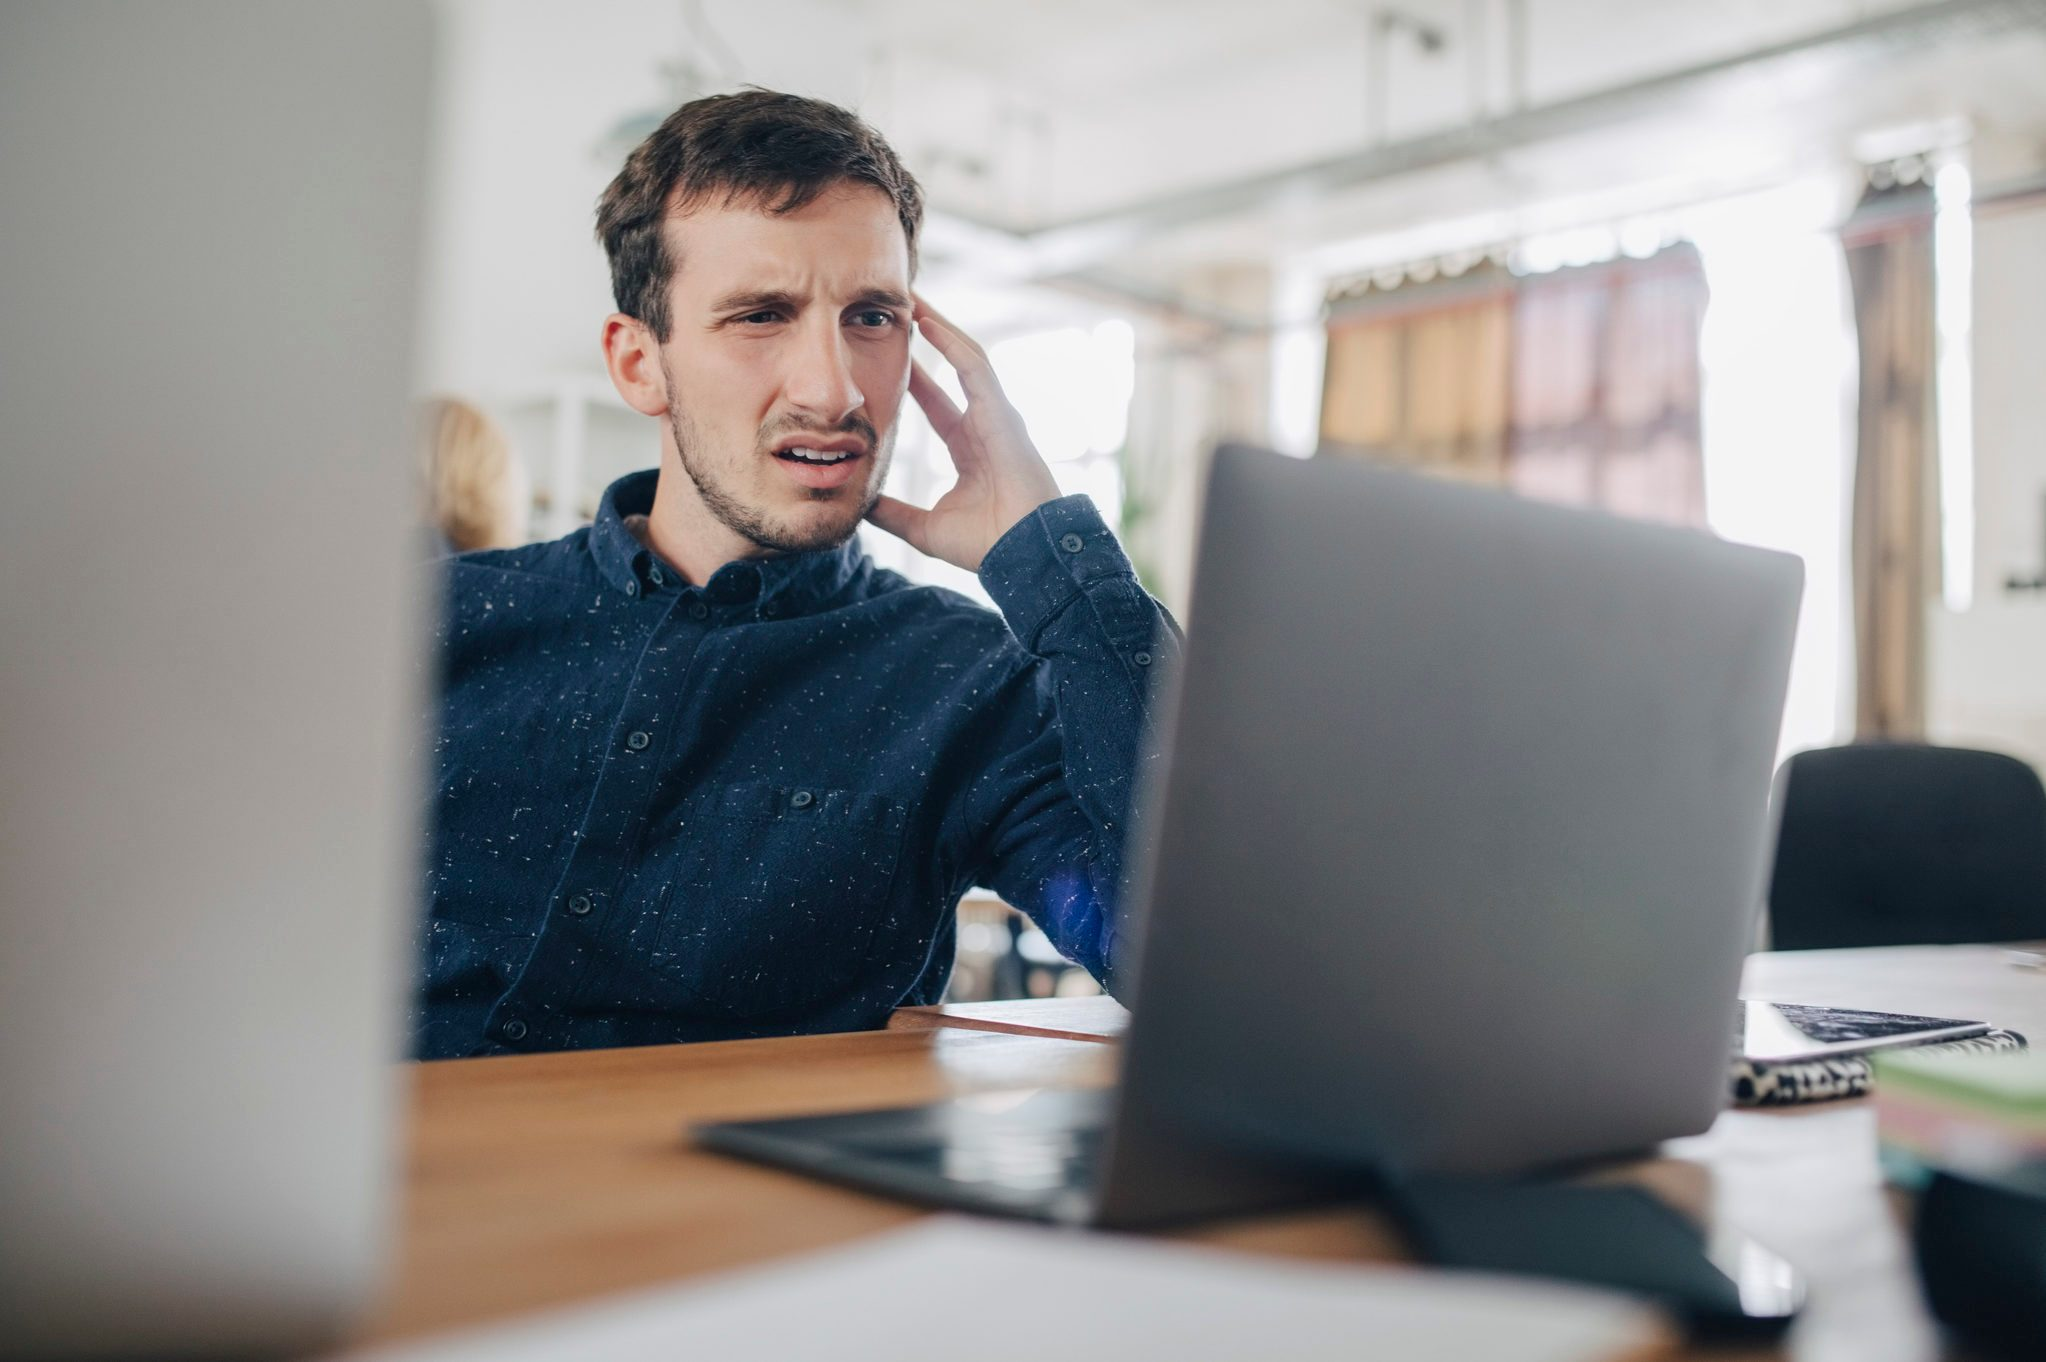 Confused businessman looking at laptop while sitting at desk in office